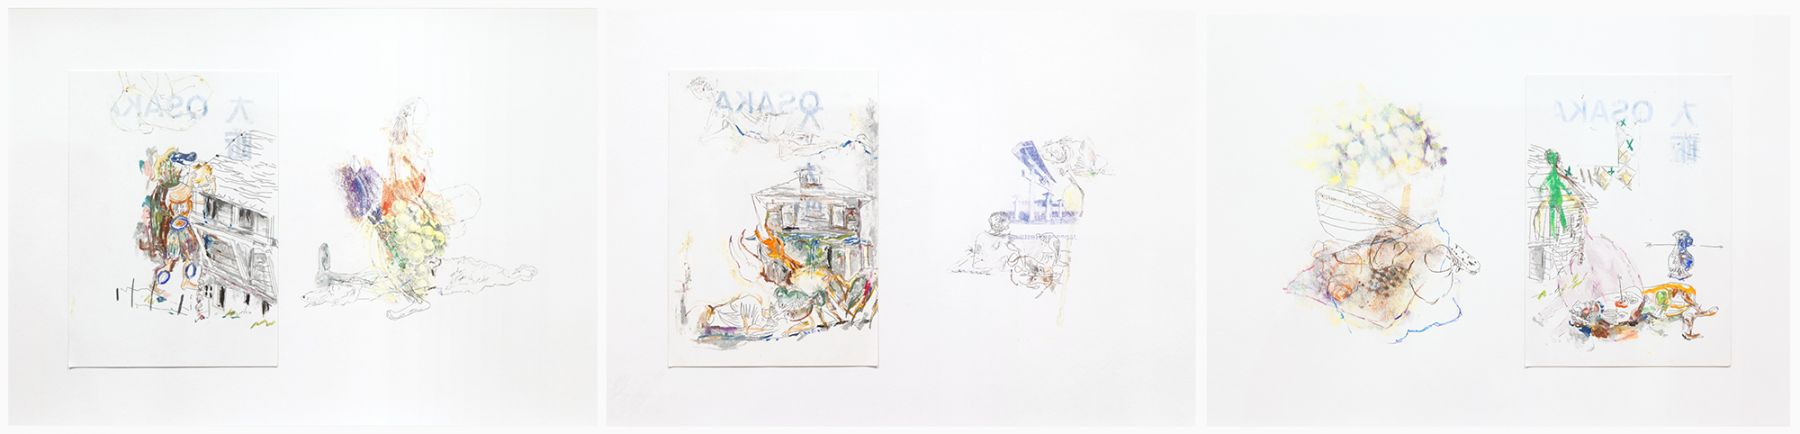 Helen Marten mud and kings, 2015 Pastel, pencil, ink Paper: 13 1/4 x 18 1/8 inches (33.7 x 46 cm) each Frame: 13 7/8 x 18 3/4  x 1 1/4 inches (35.2 x 47.6 x 3.2 cm) each